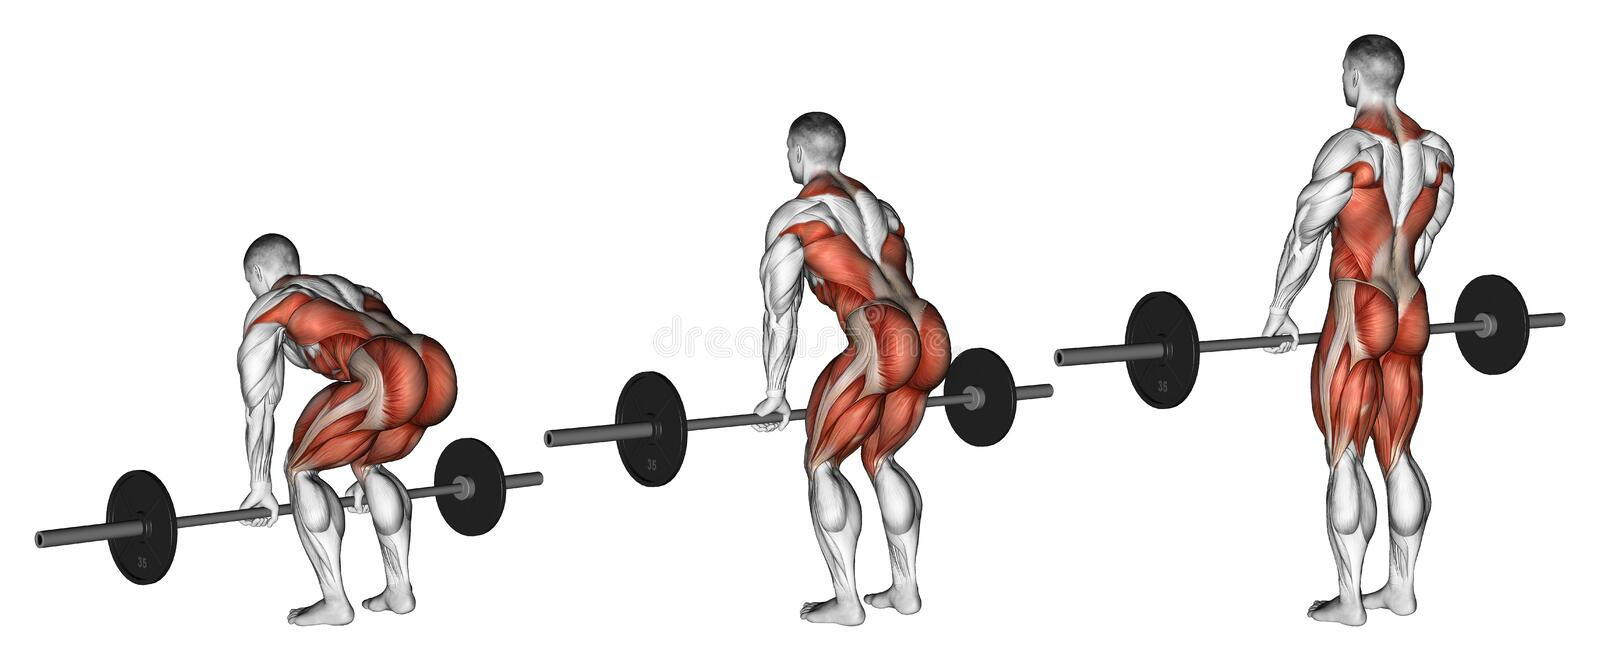 Exercising. Deadlifts with a barbell royalty free stock photos